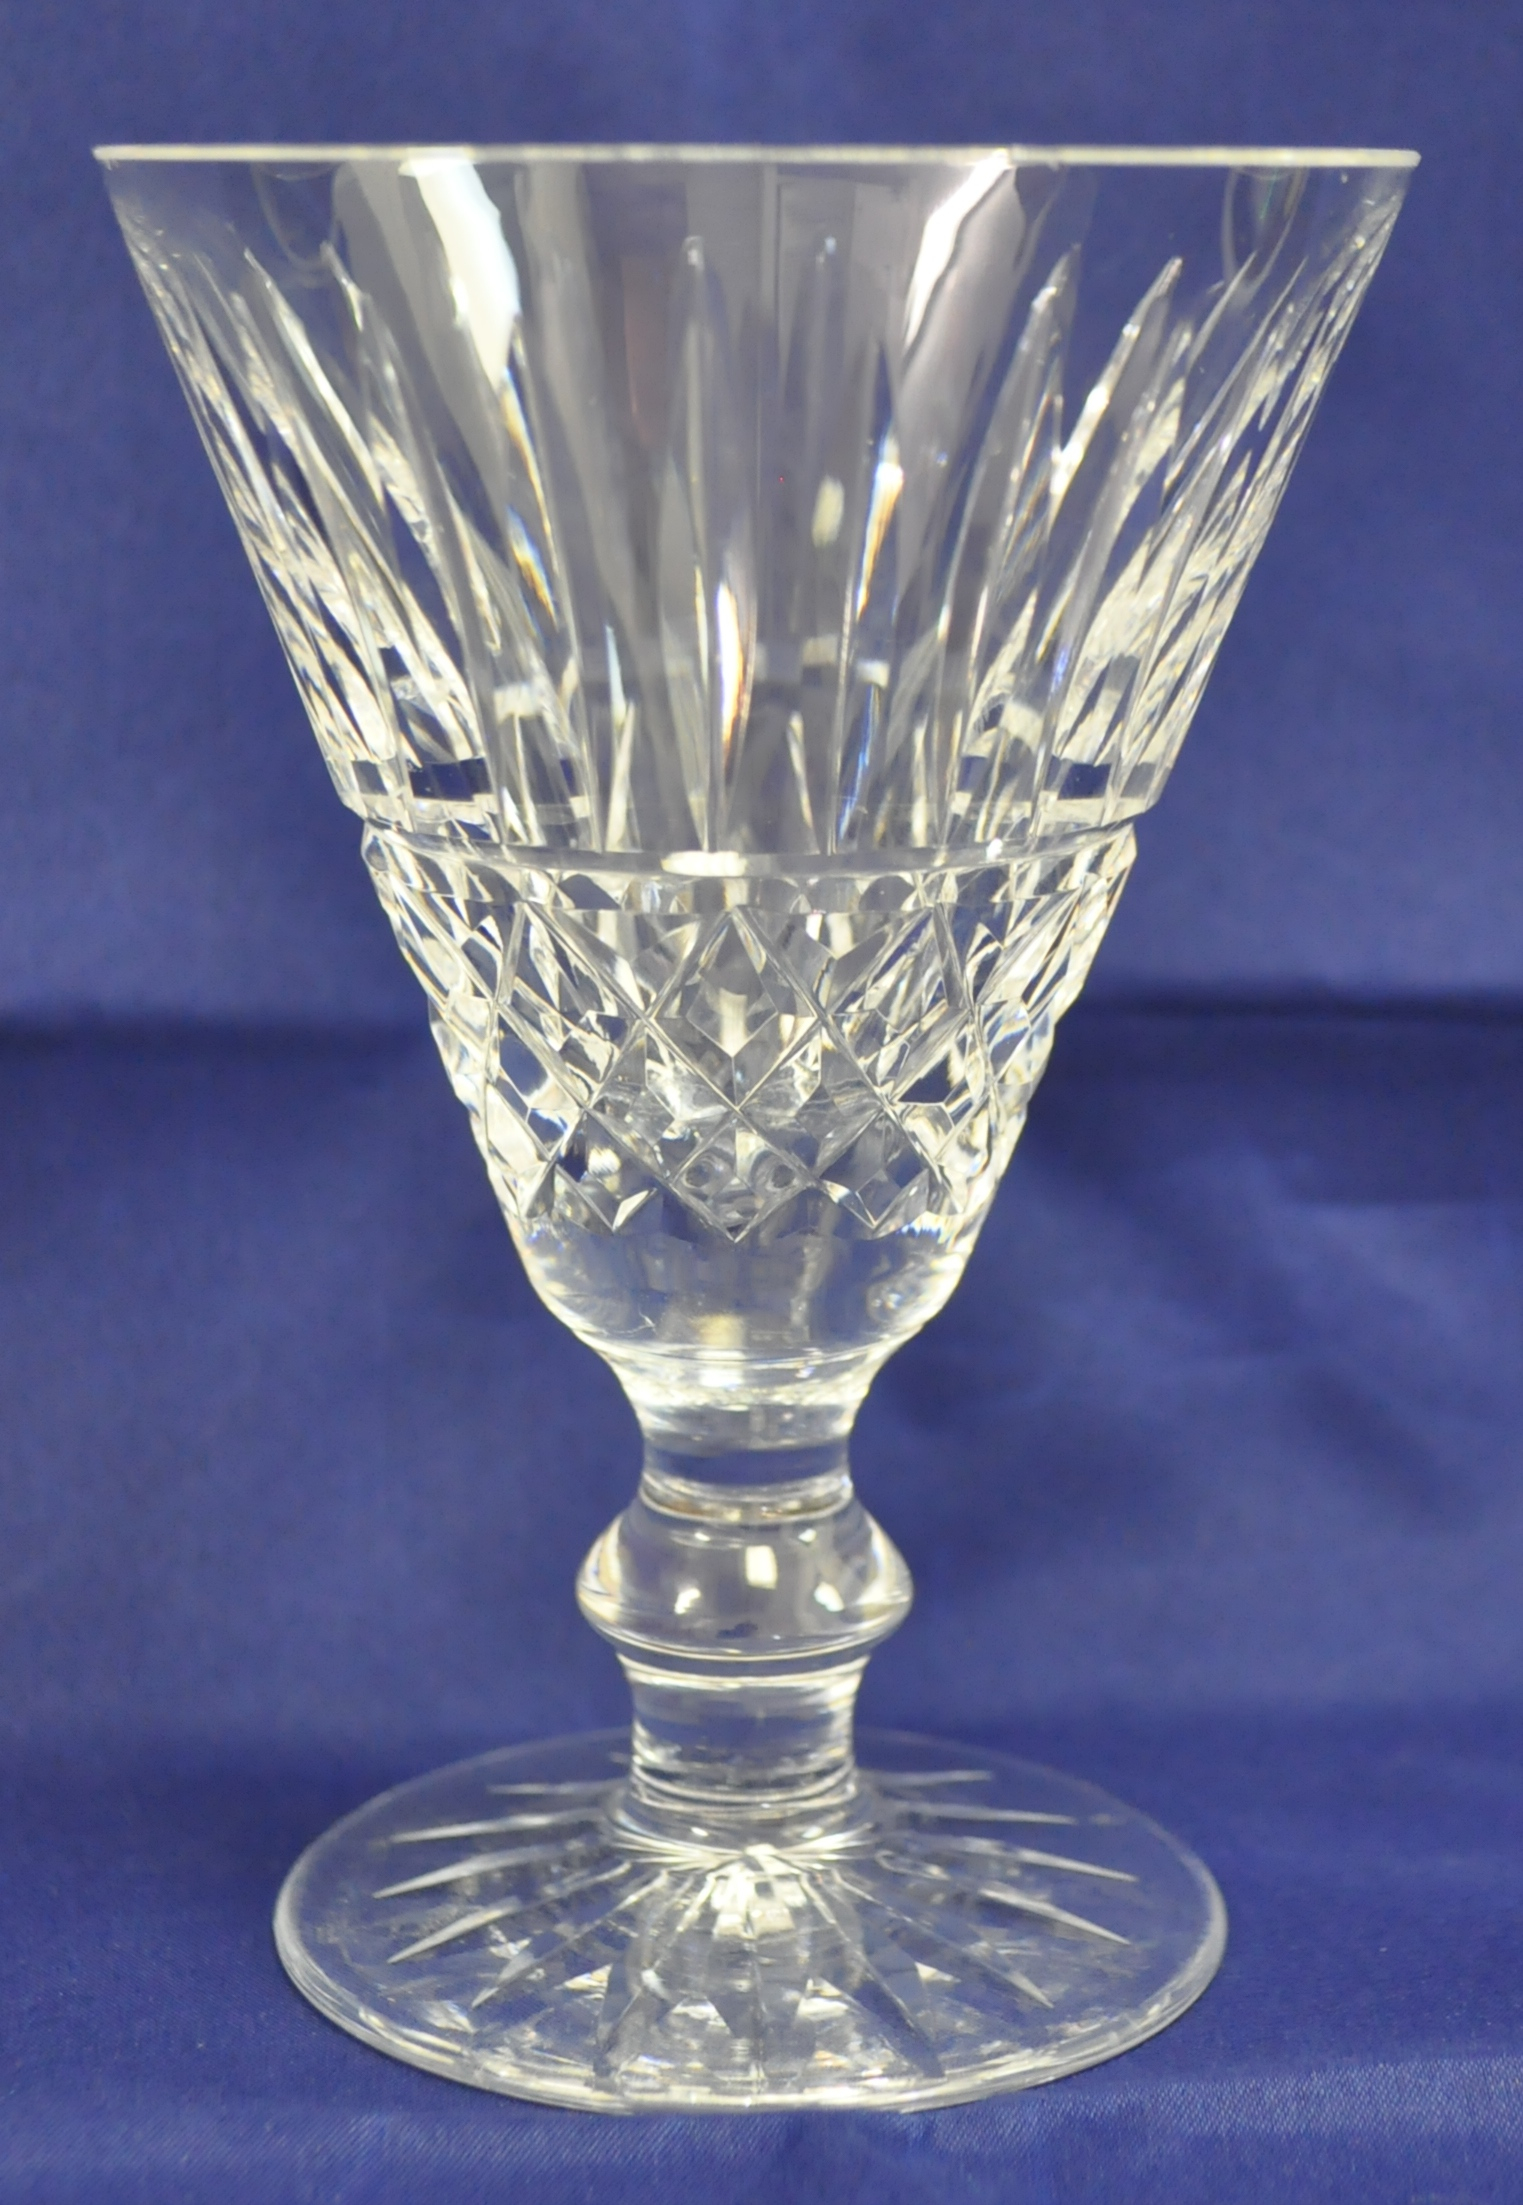 Fantastic Waterford Crystal Patterns for Dining Ware Ideas: DSC 0005